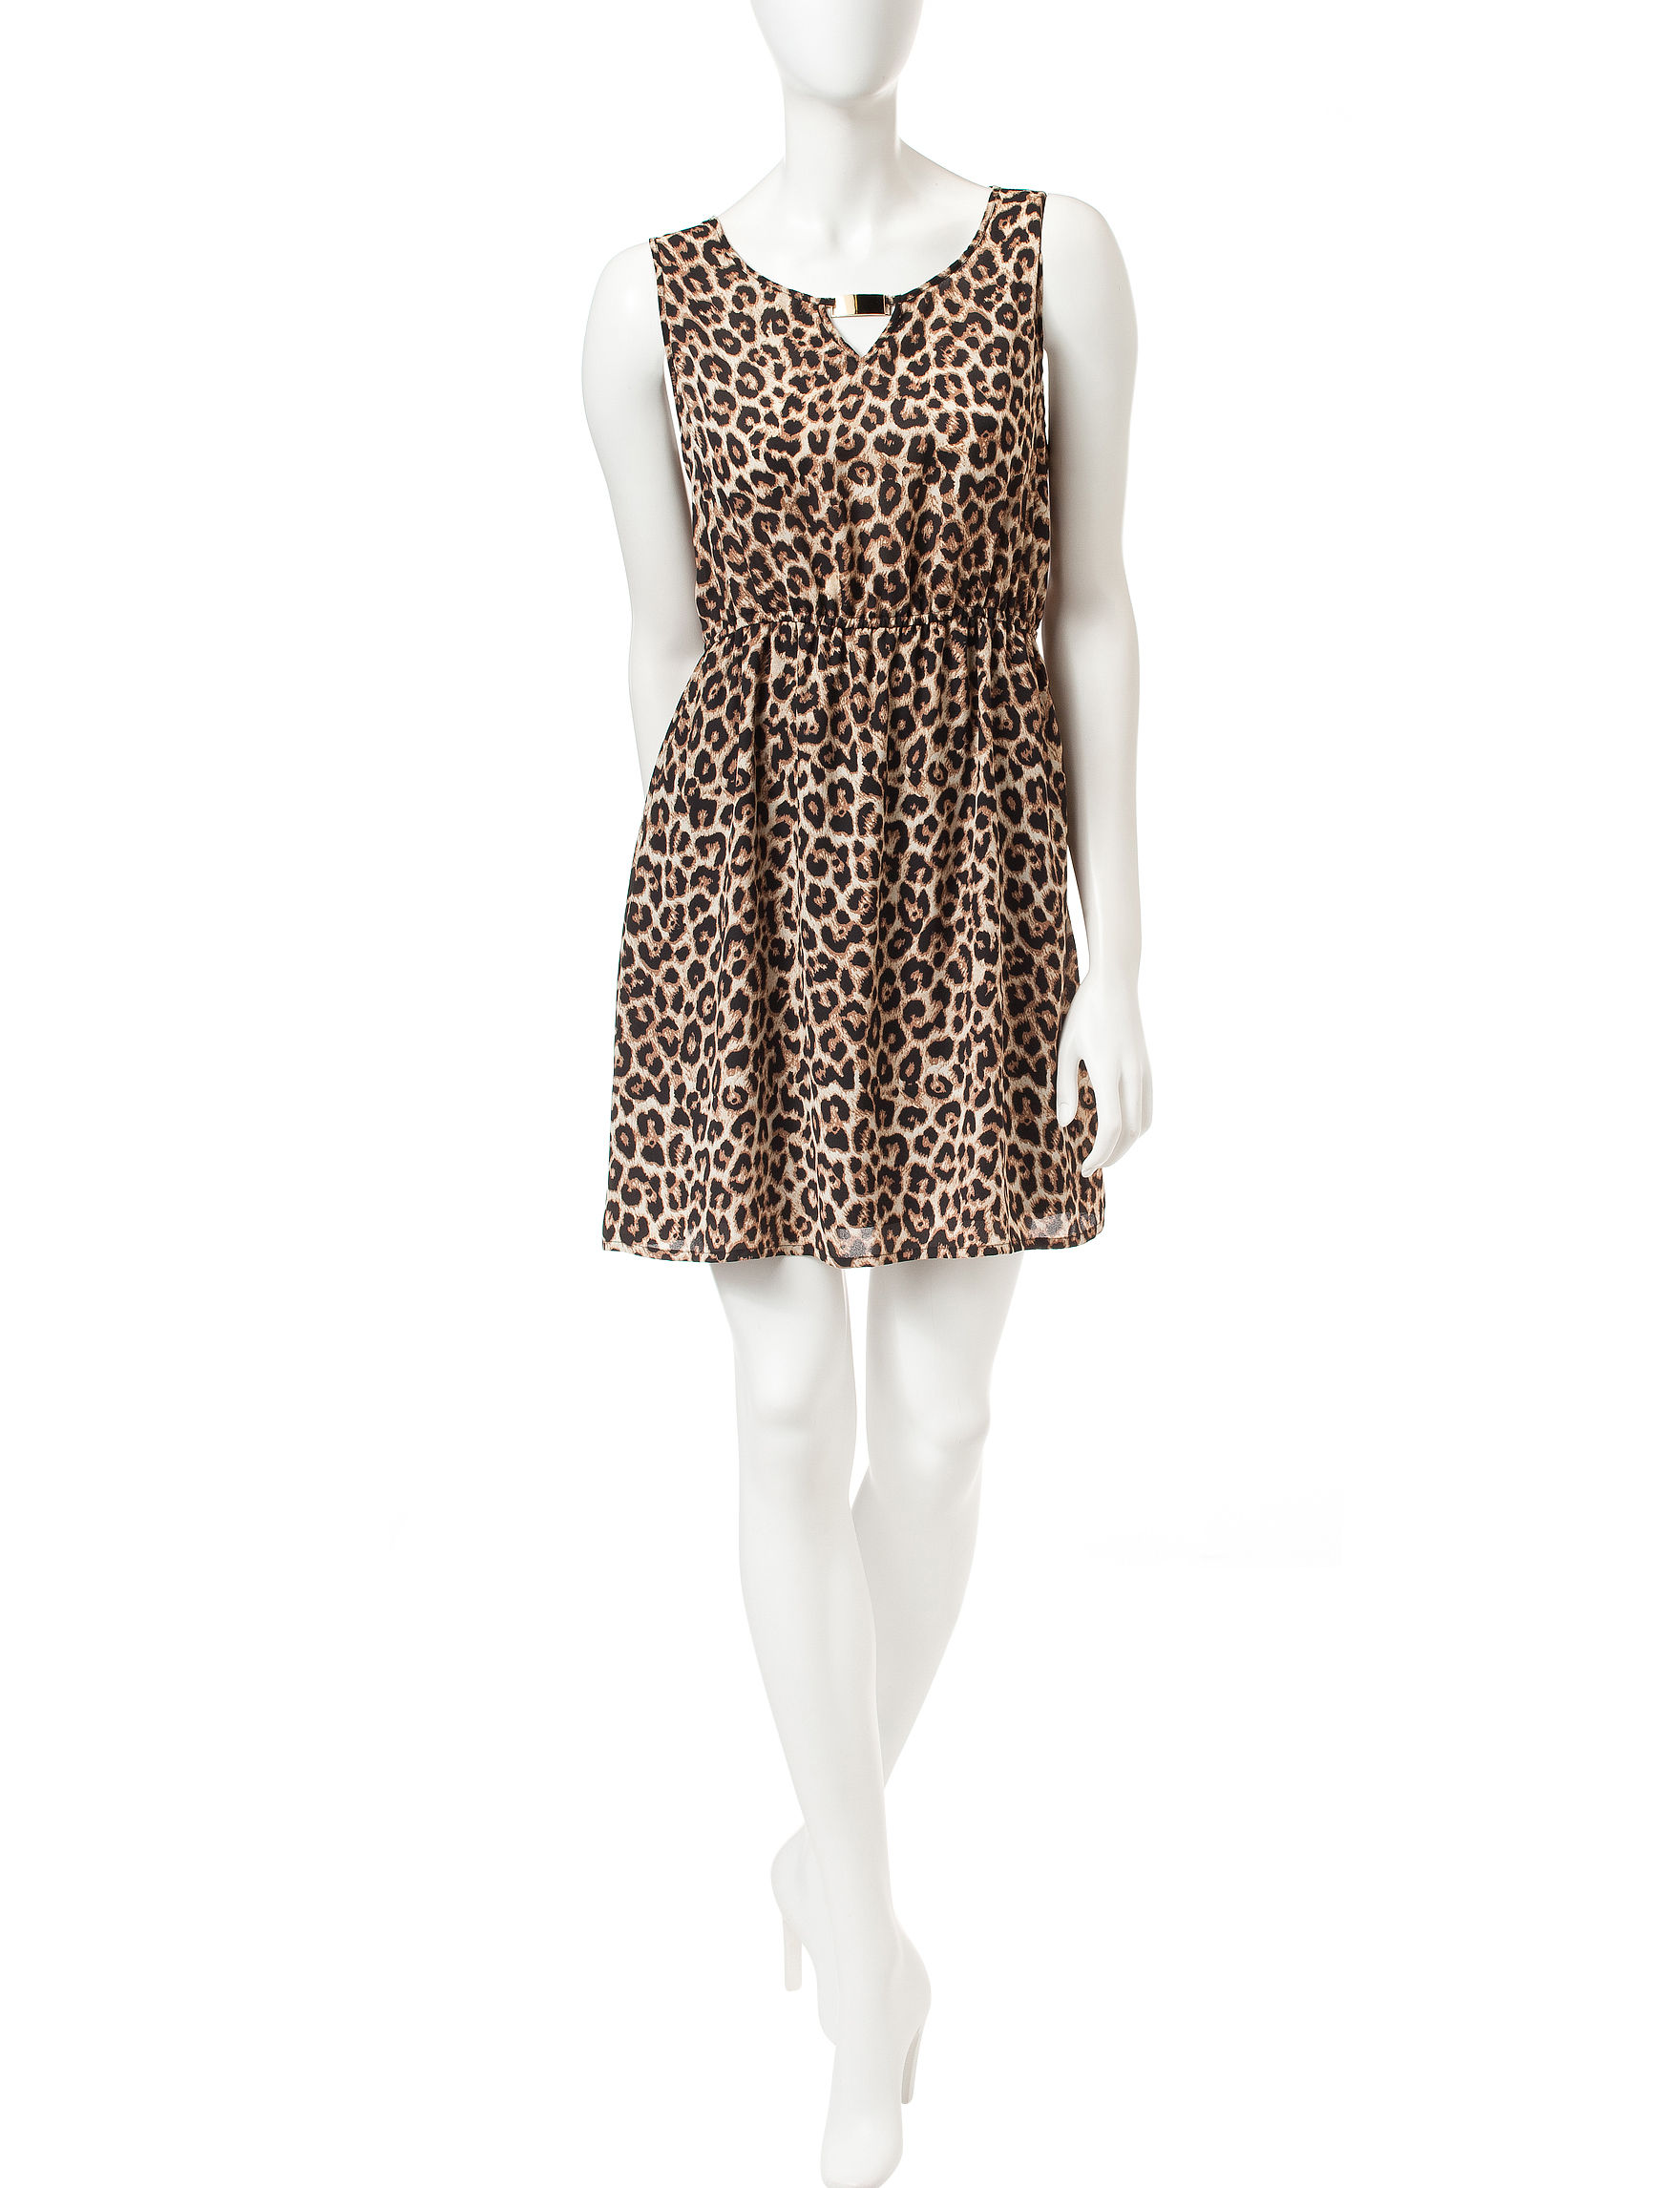 Justify Leopard Fit & Flare Dresses